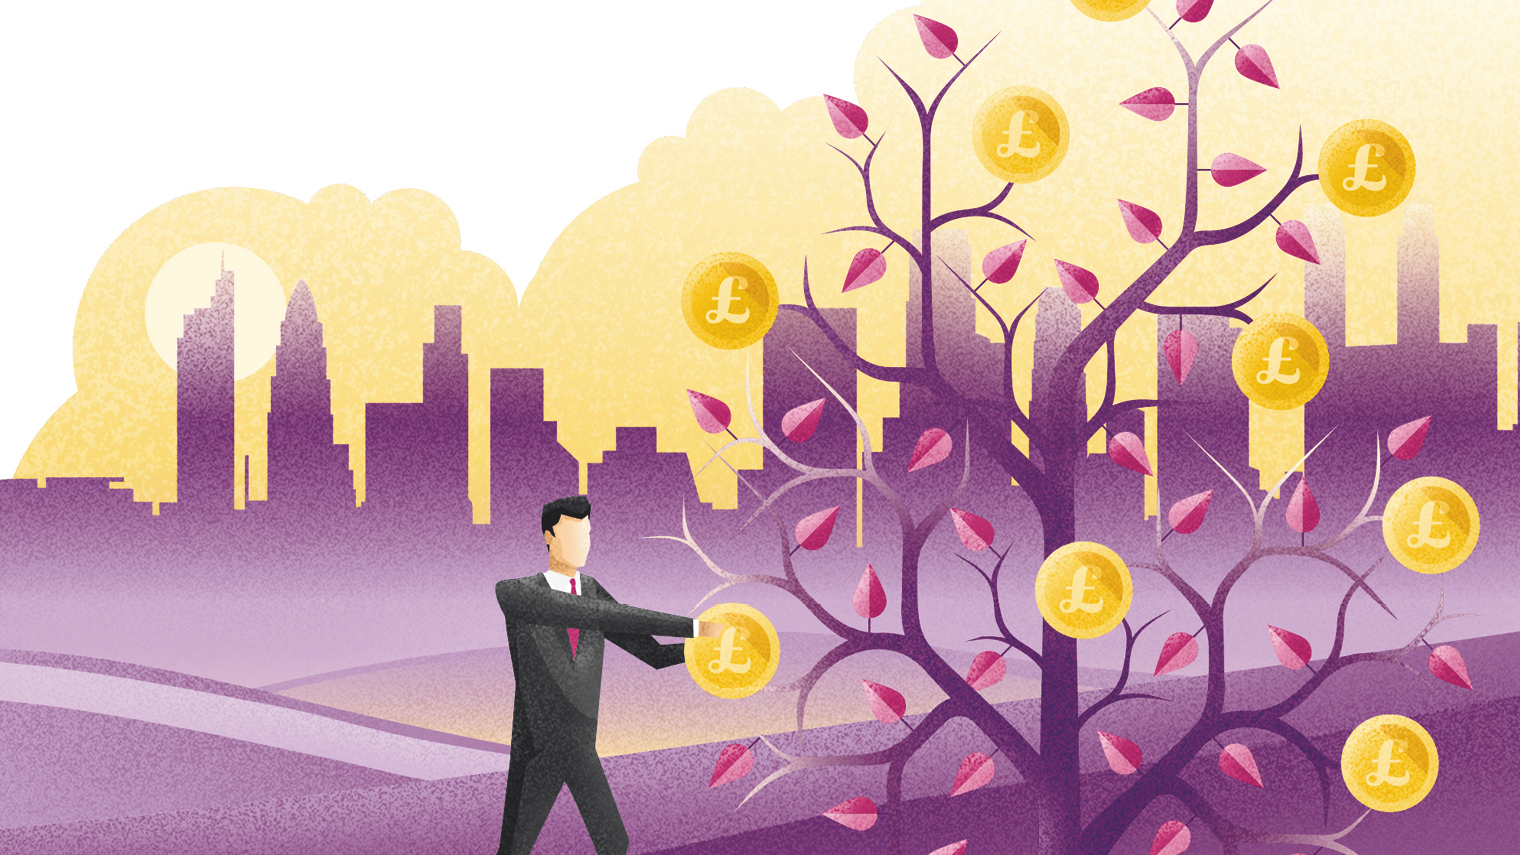 Investors need nerves of steel – and an open mind in 2017 - Raconteur